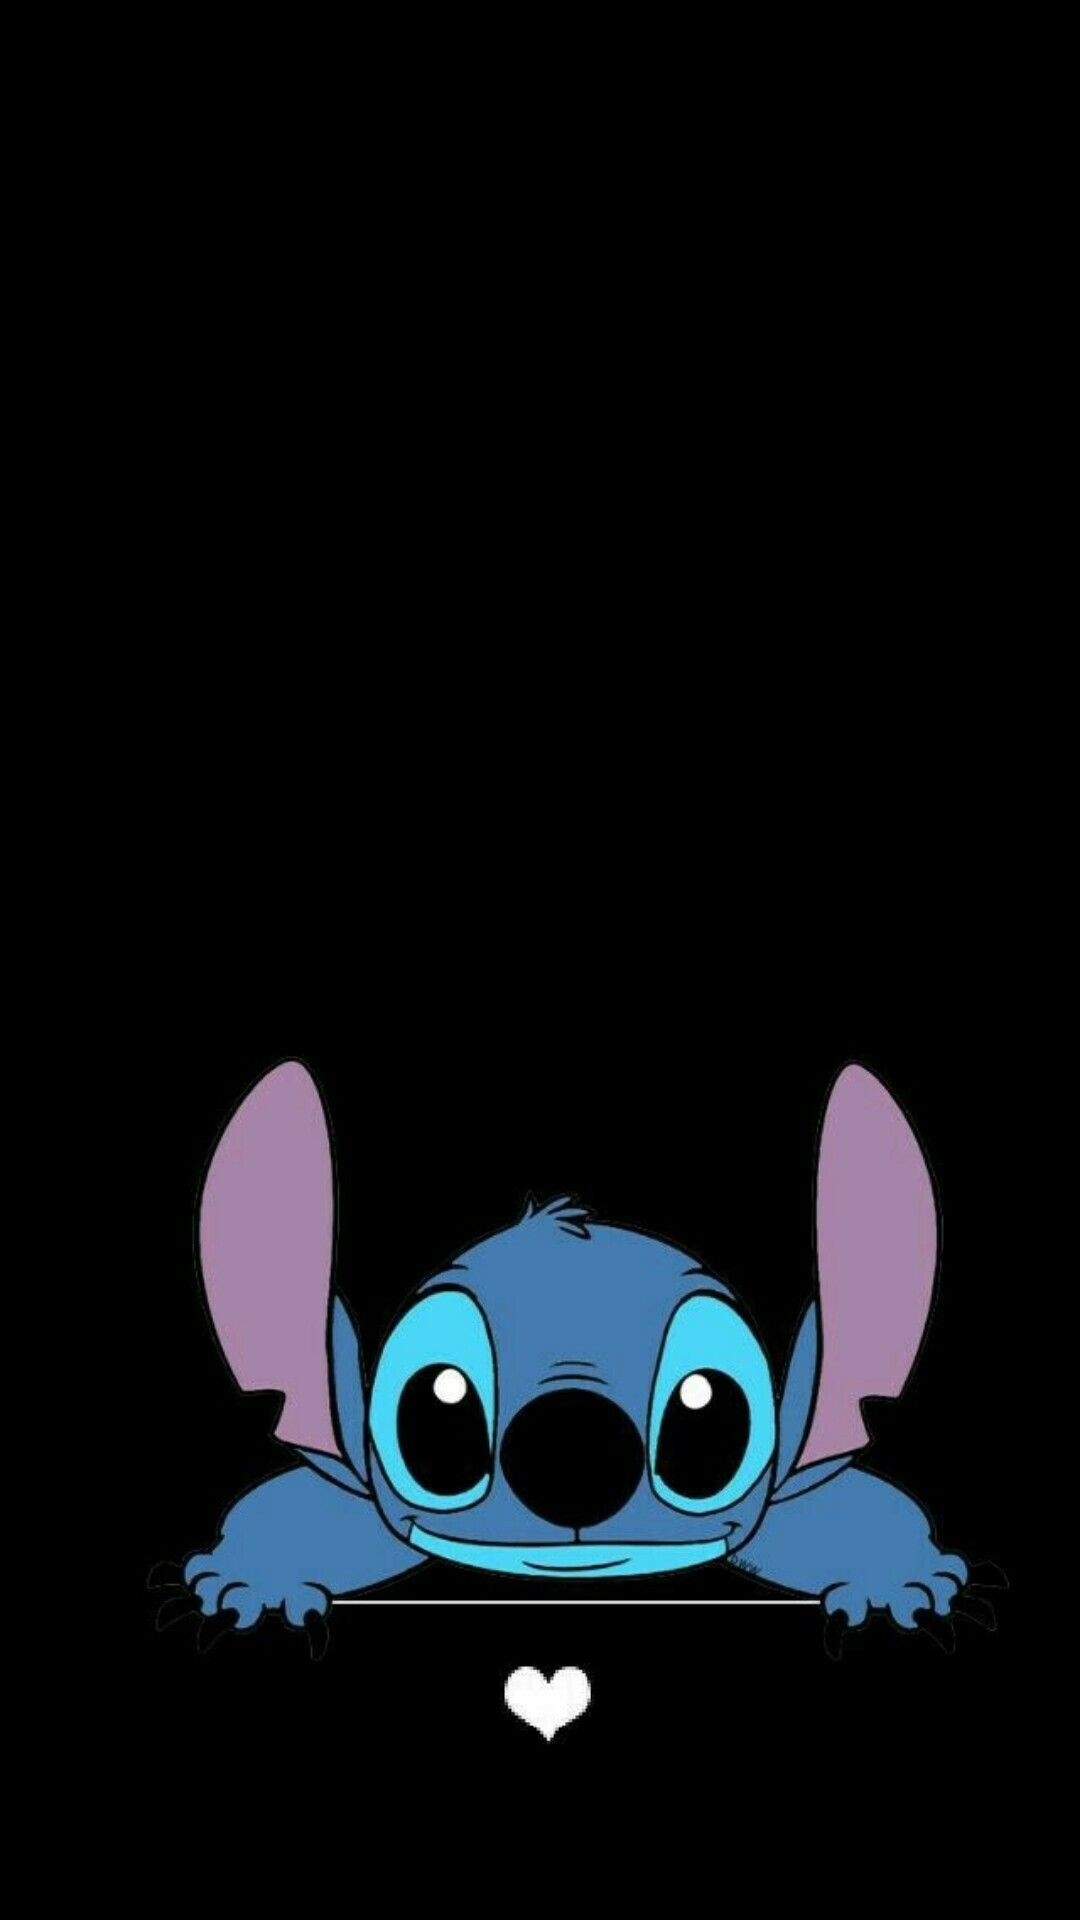 Stitch Iphone Wallpapers 19 Images Wallpaperboat